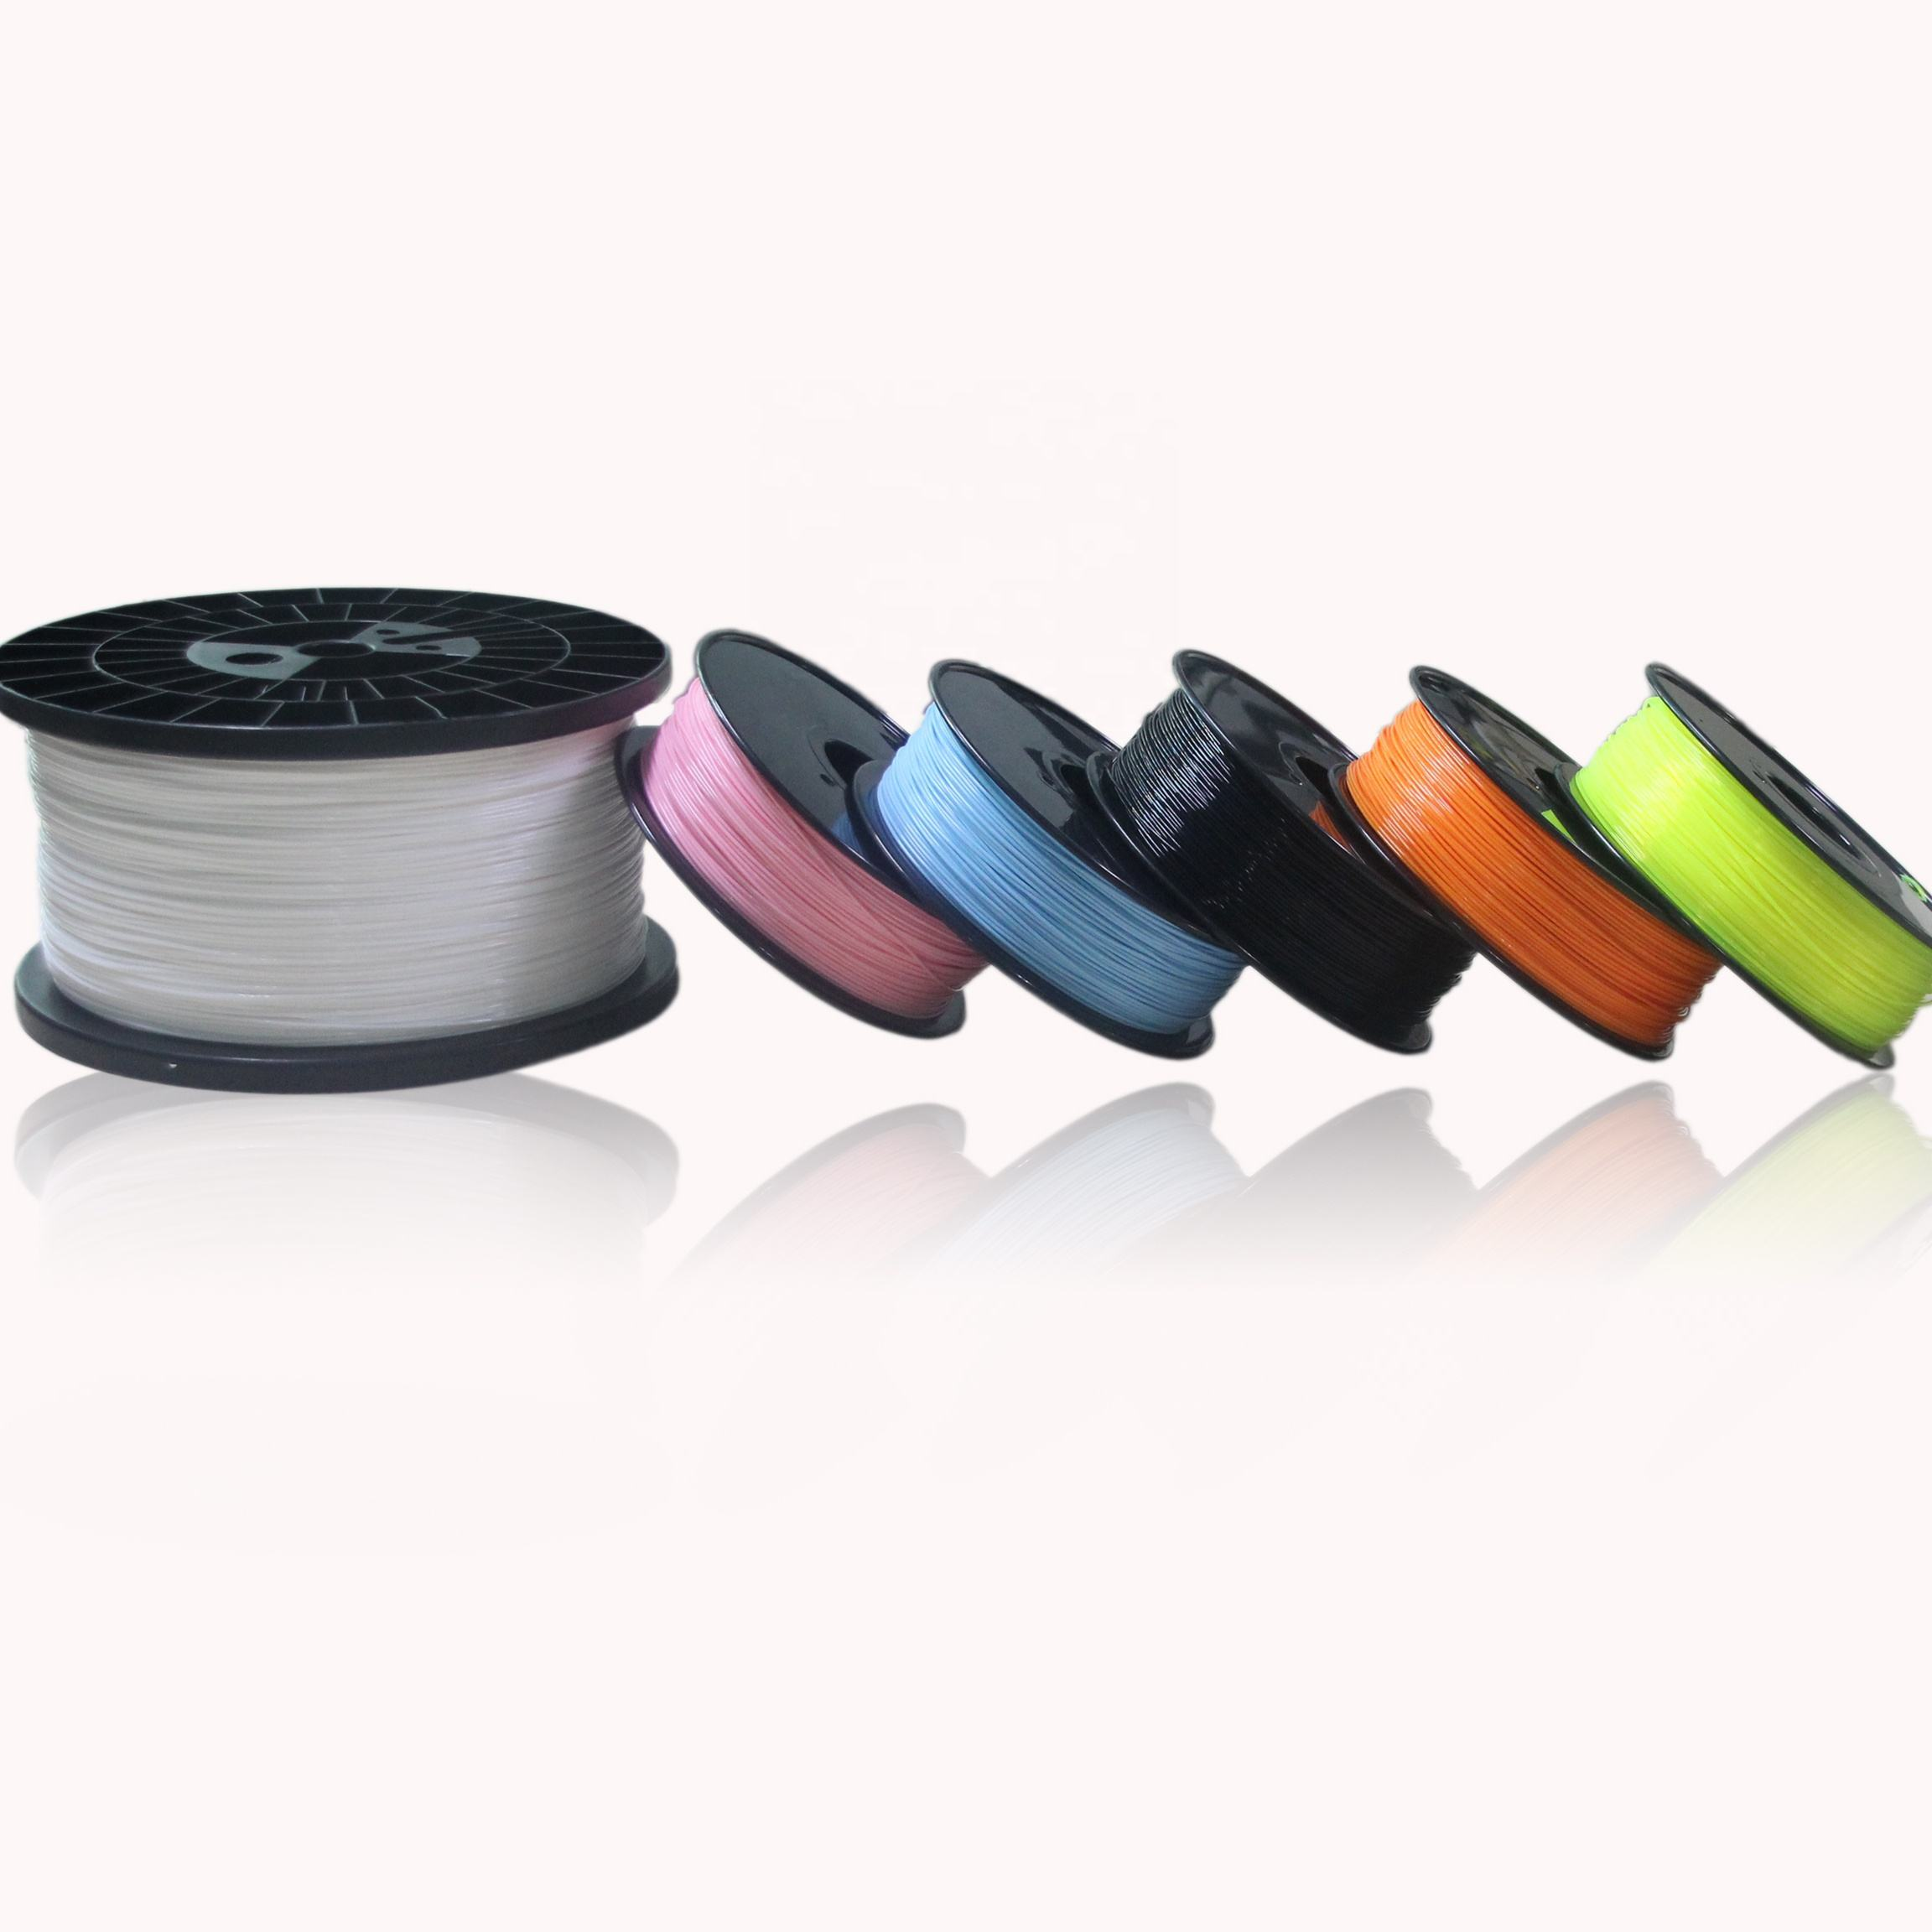 Excellent 3D printer filament 50 types 45 colors 1.75mm 2.85mm 3mm abs pla 3d printing filament free sample